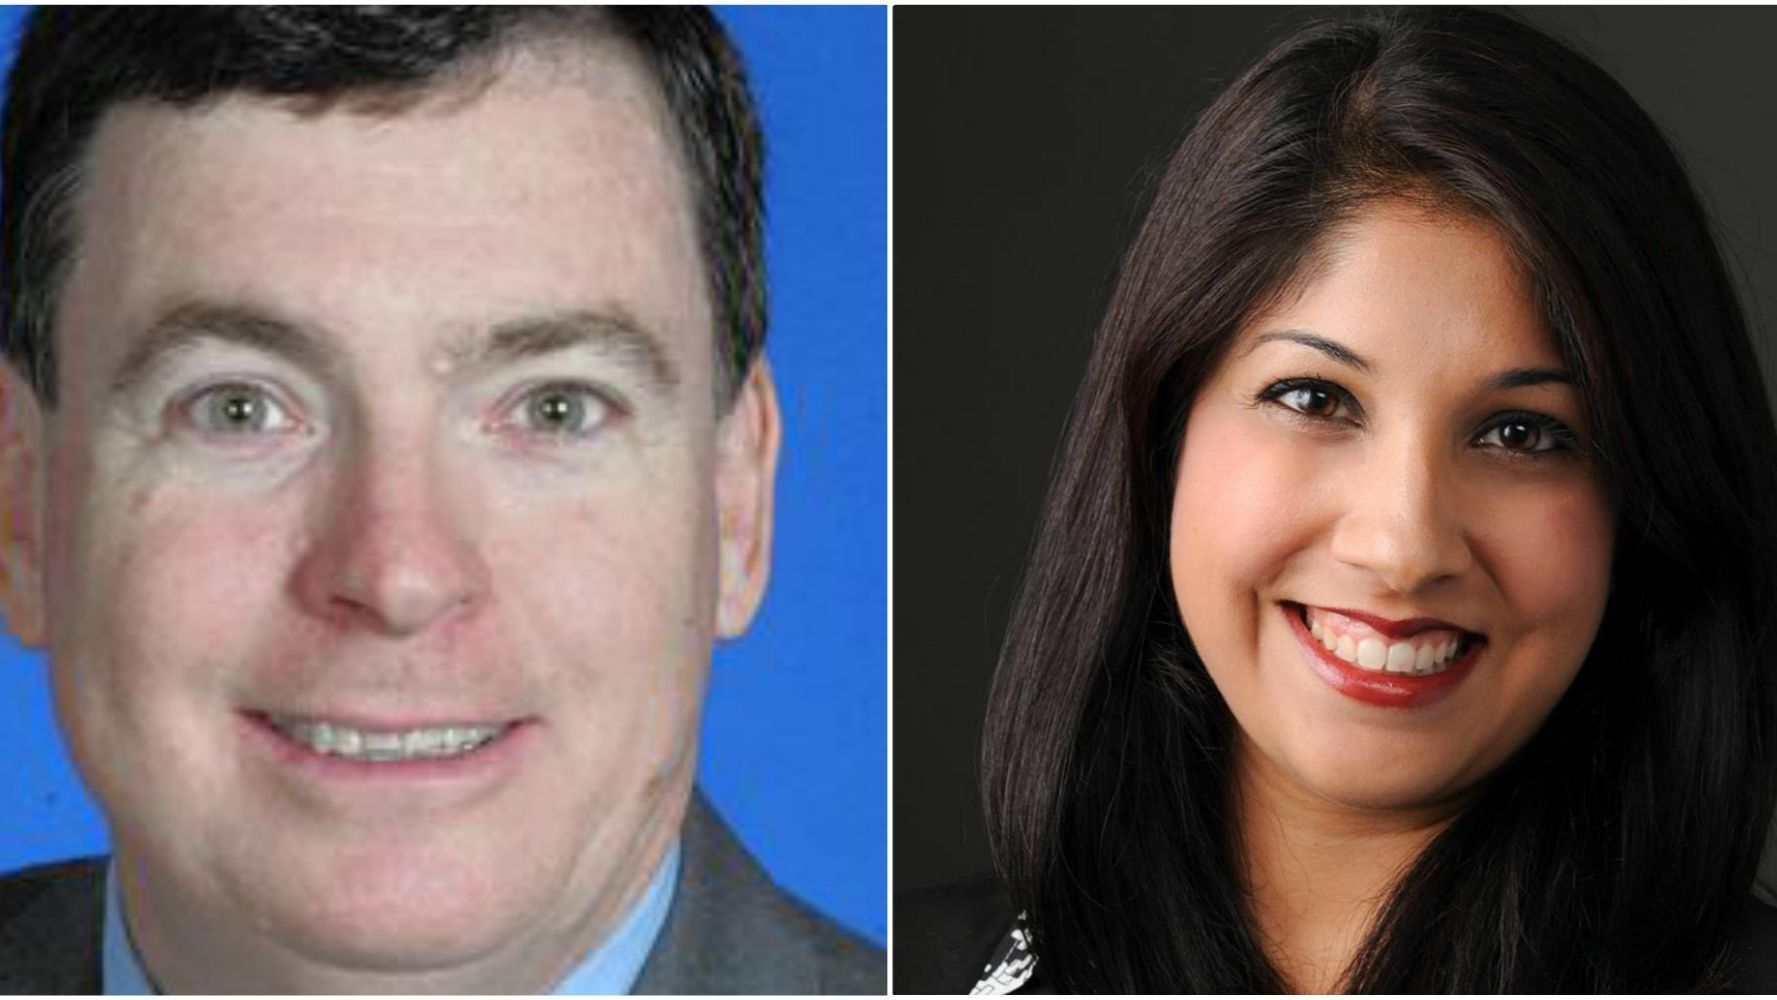 Orlando elections: District 3 candidates trade accusations as race heats up